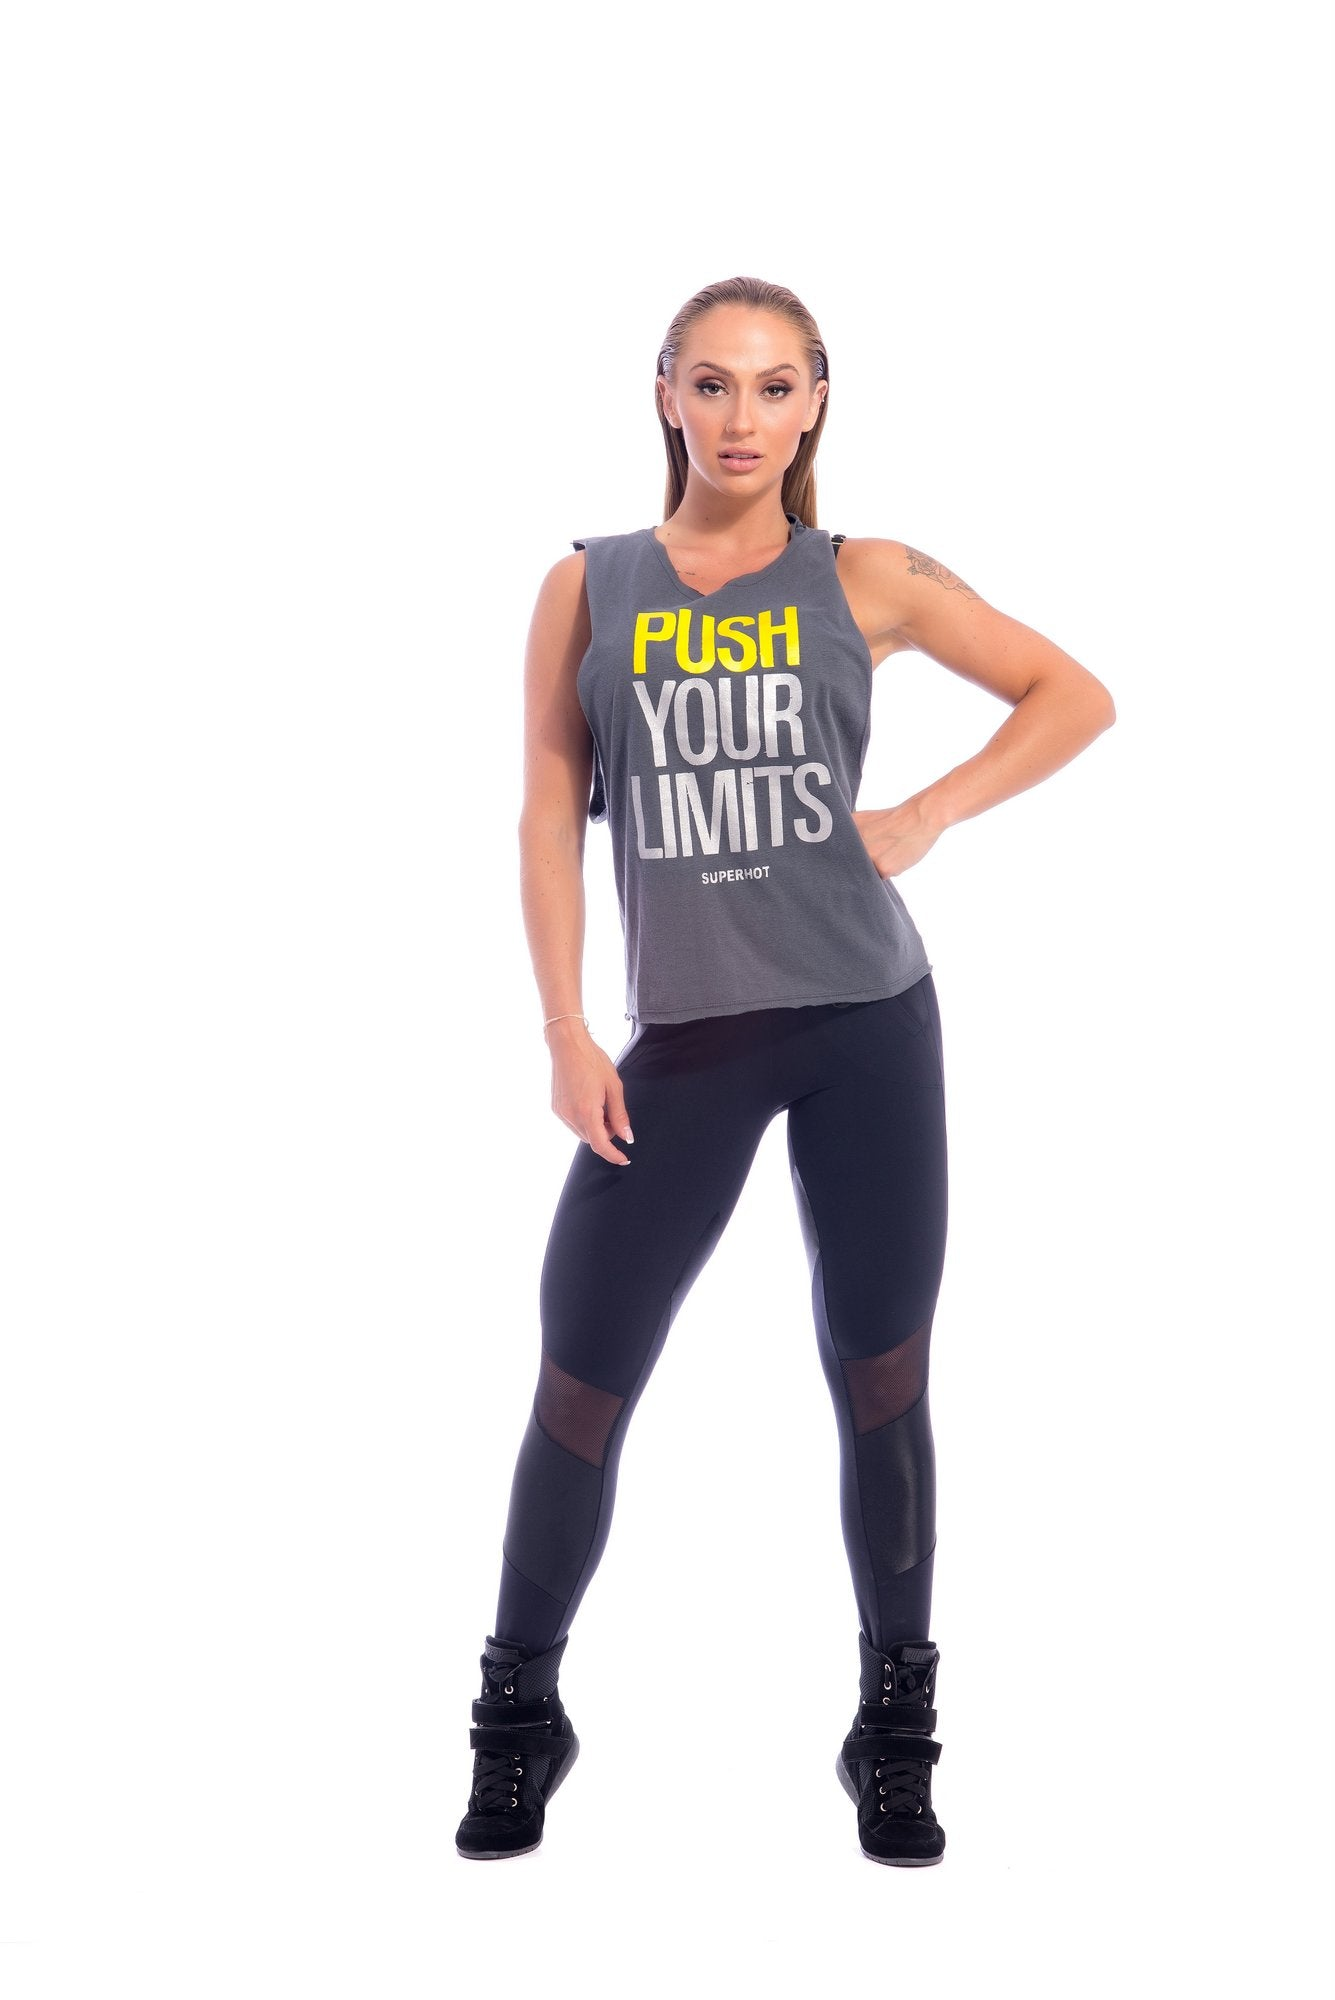 Push Your Limits Tank Top - SUPERHOT - FitZee